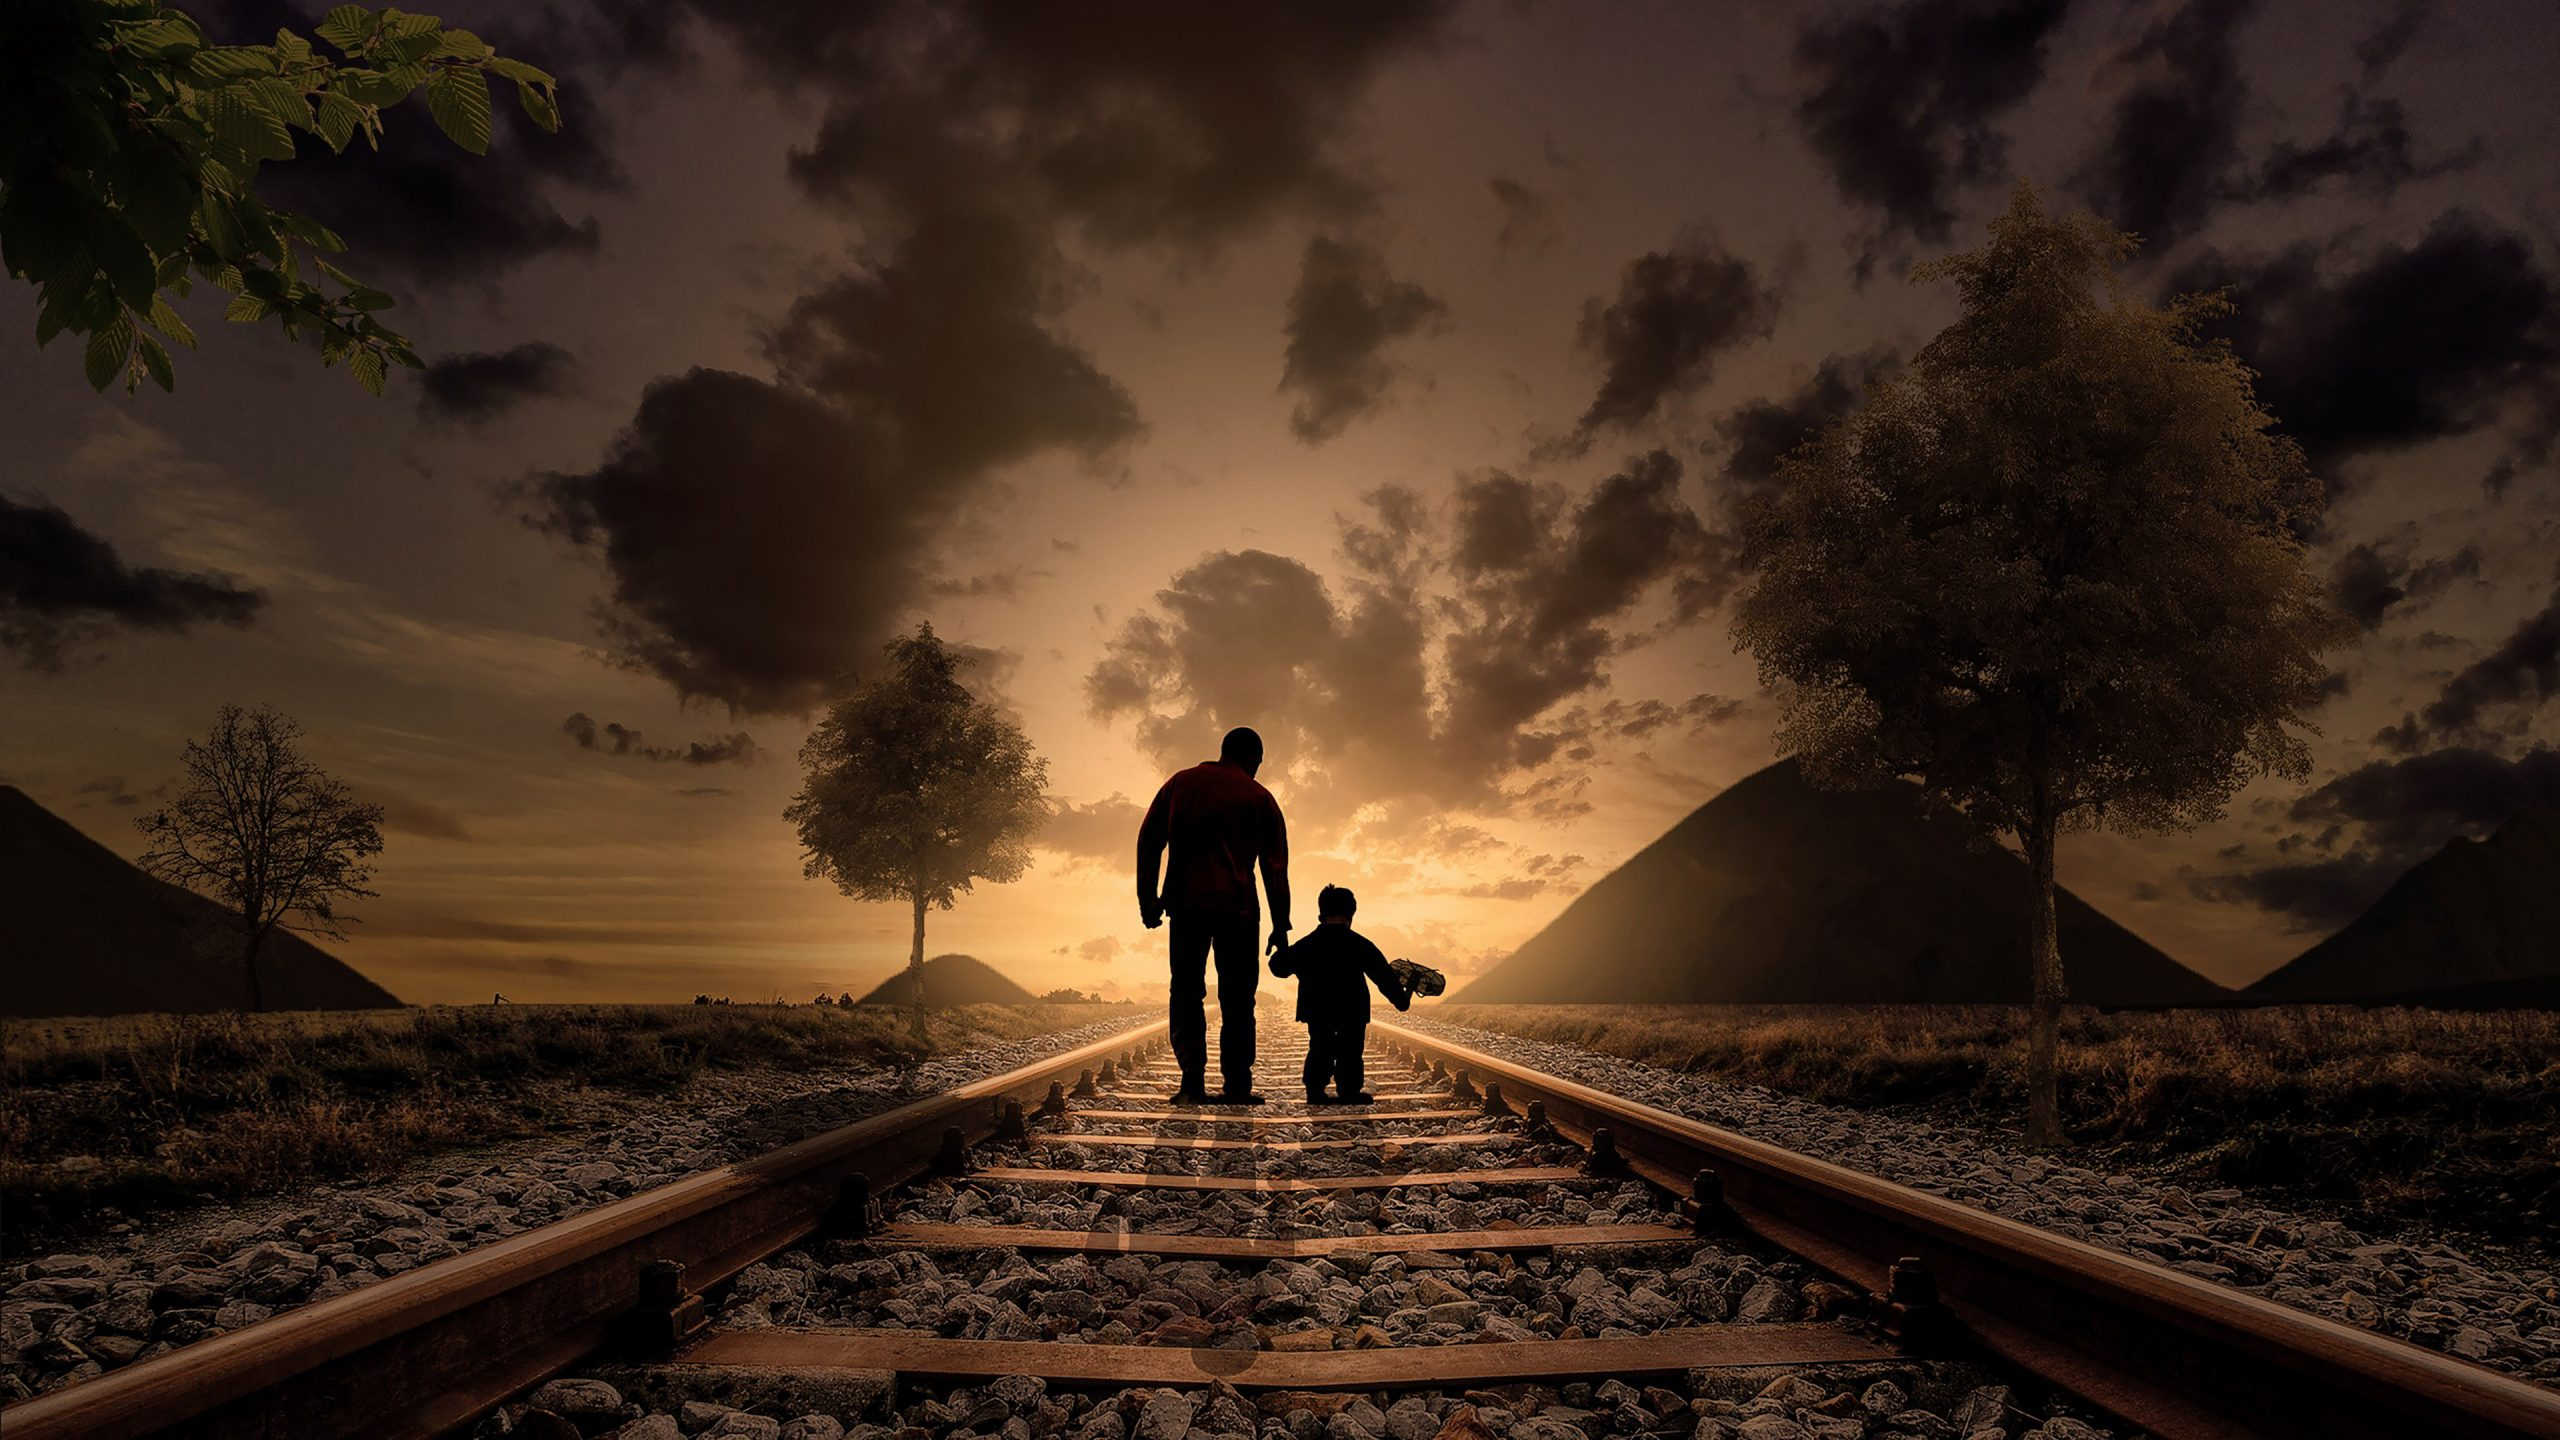 Father Son Railway Track Clouds Dusk 4k Wallpaper Best